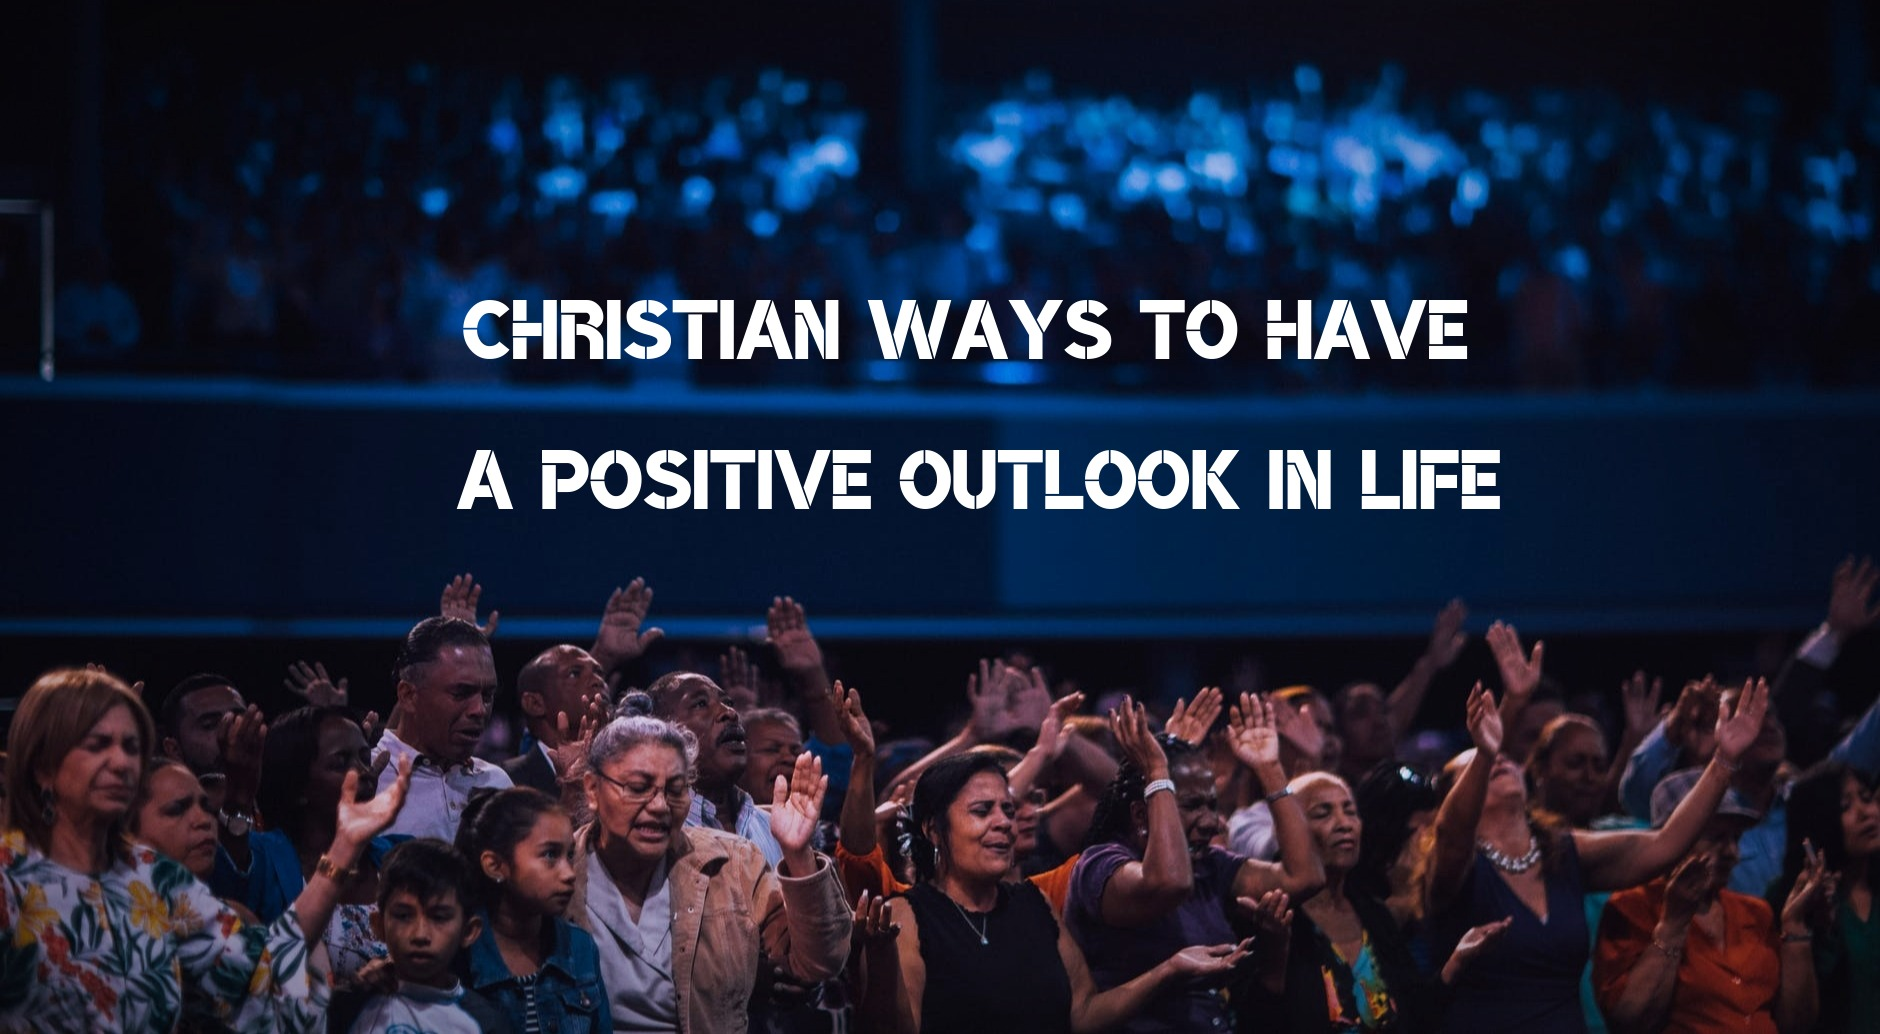 Christian Ways to Have a Positive Outlook in Life